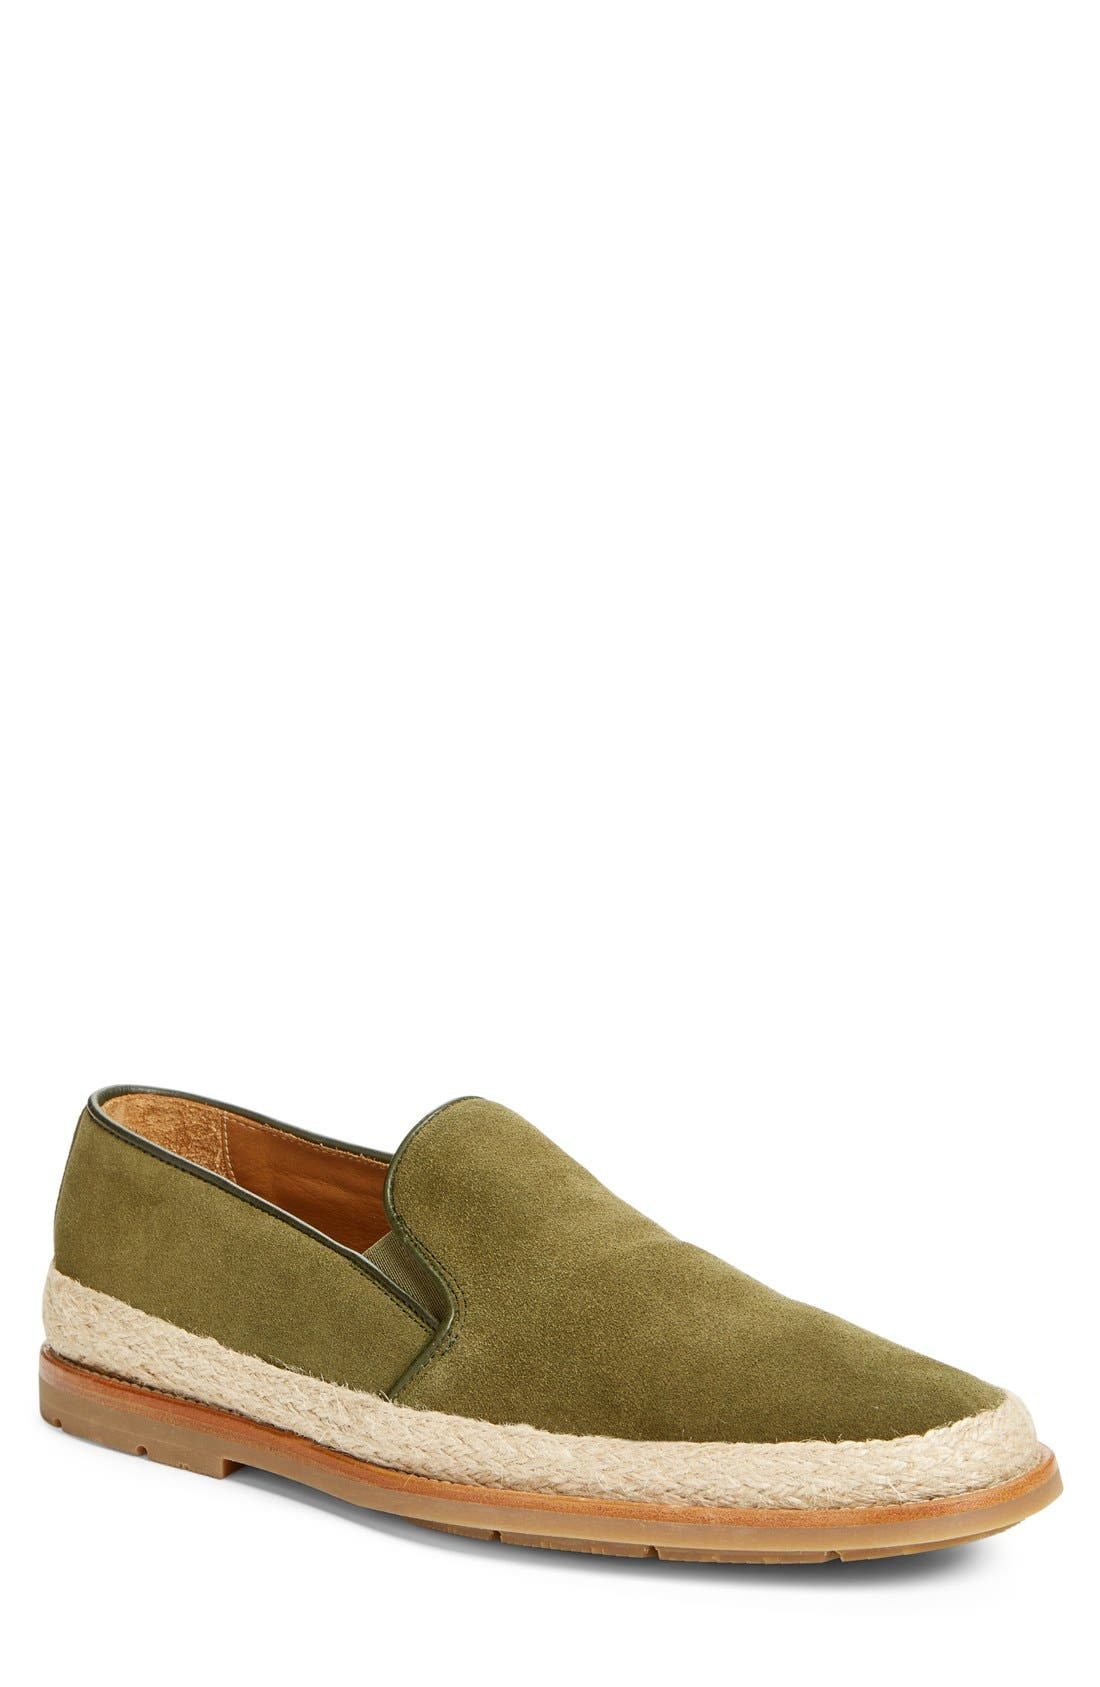 'Zayn' Weatherproof Espadrille,                             Main thumbnail 1, color,                             Green Suede